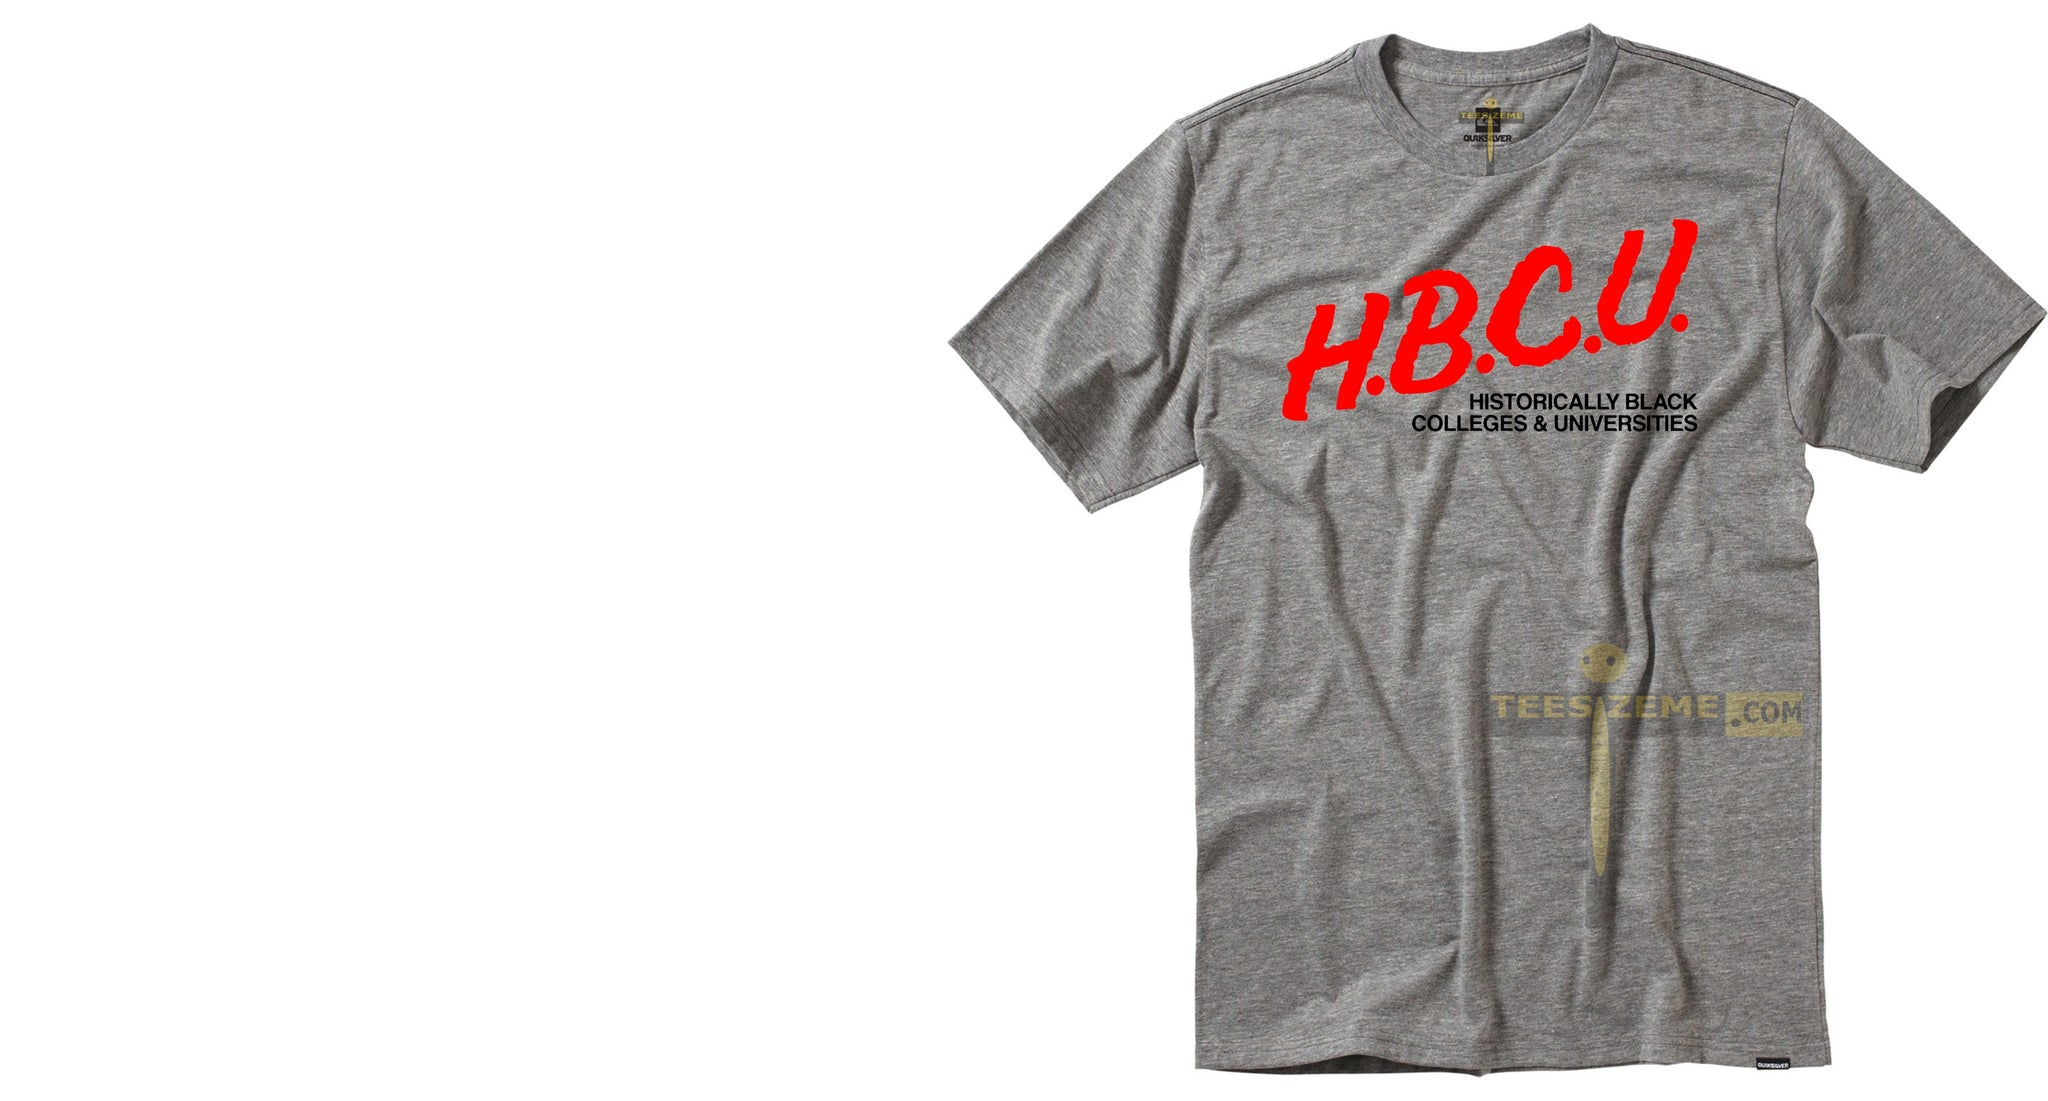 H.B.C.U. Historically Black Colleges & Universities - Tee Size Me